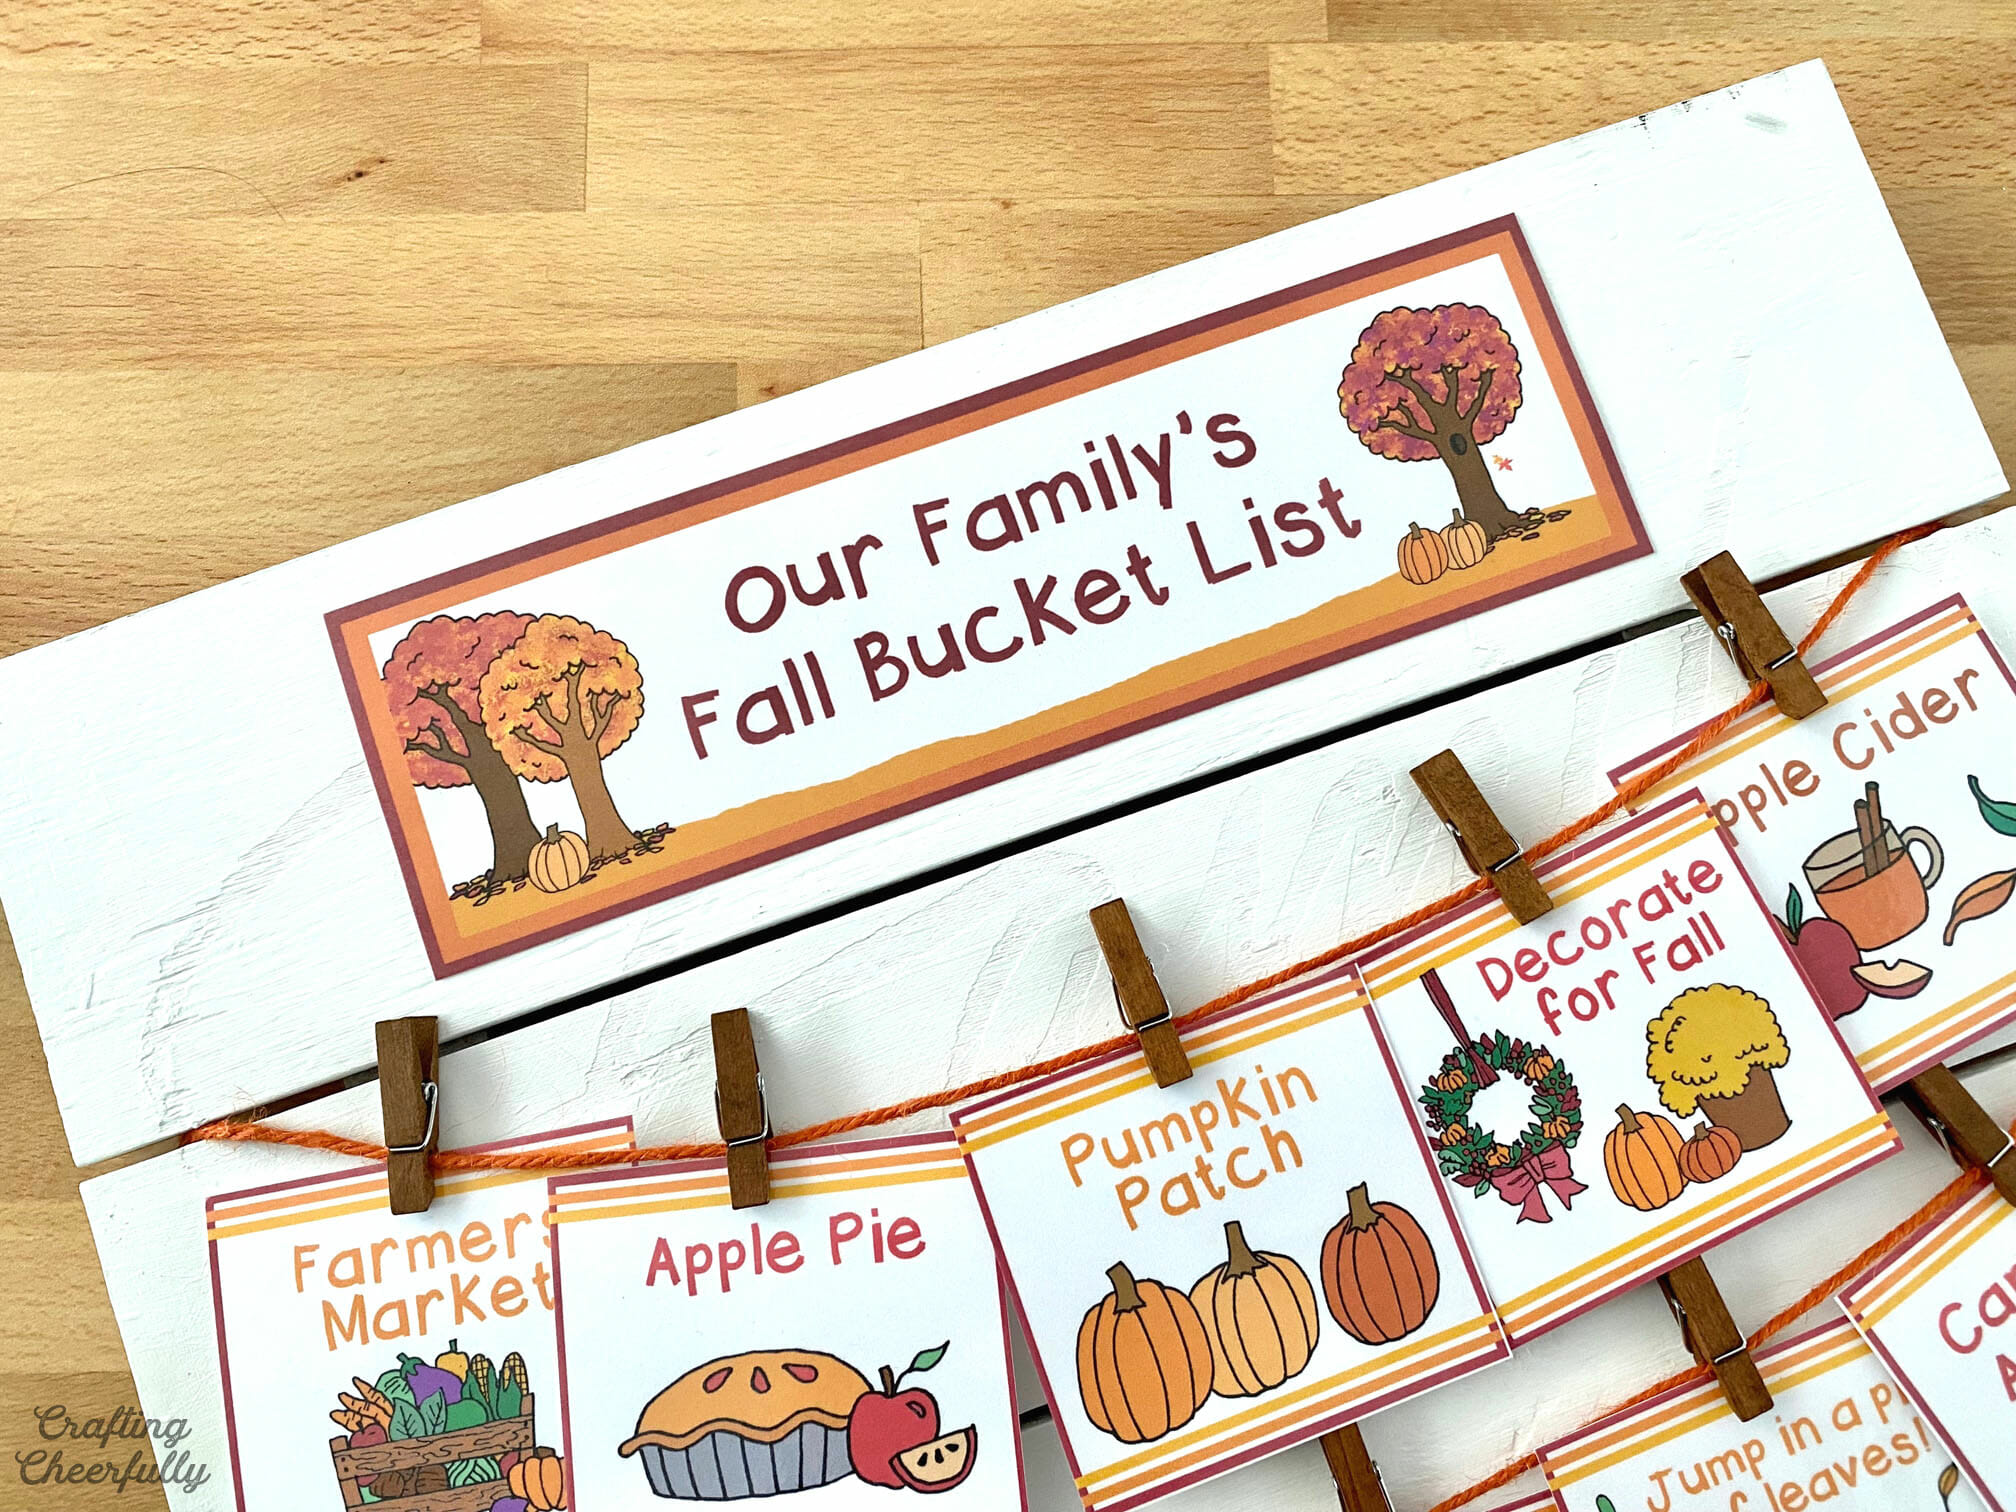 """Close up picture of the label at the top of the fall bucket list board that reads """"Our Family's Fall Bucket List""""."""